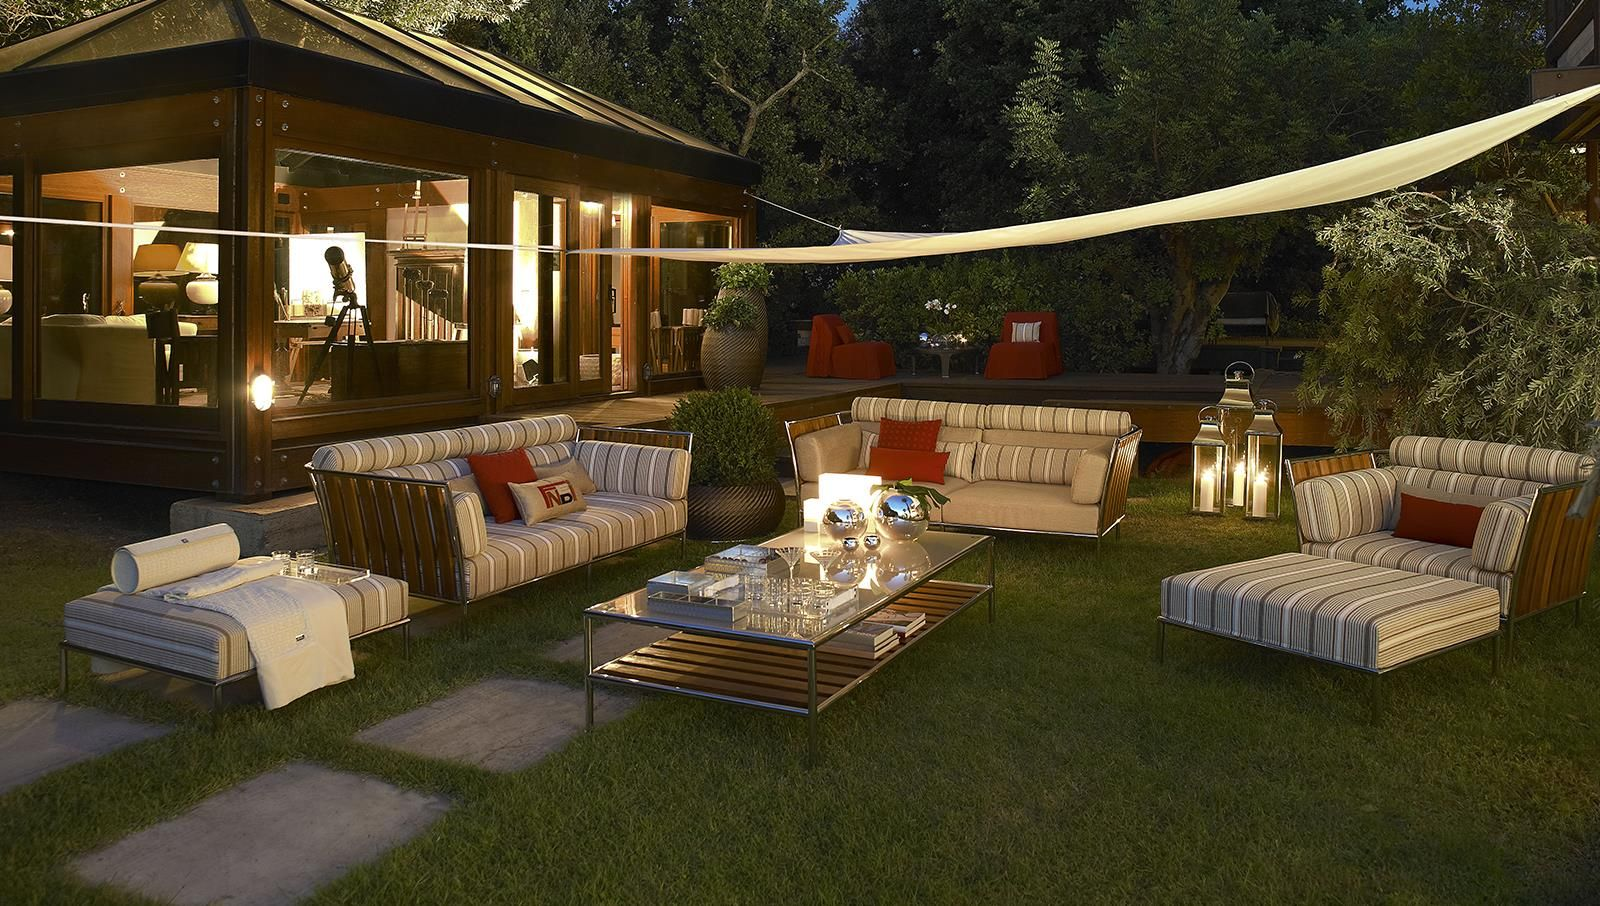 Fendi Casa For Outdoor Spaces Met Afbeeldingen Design Milaan